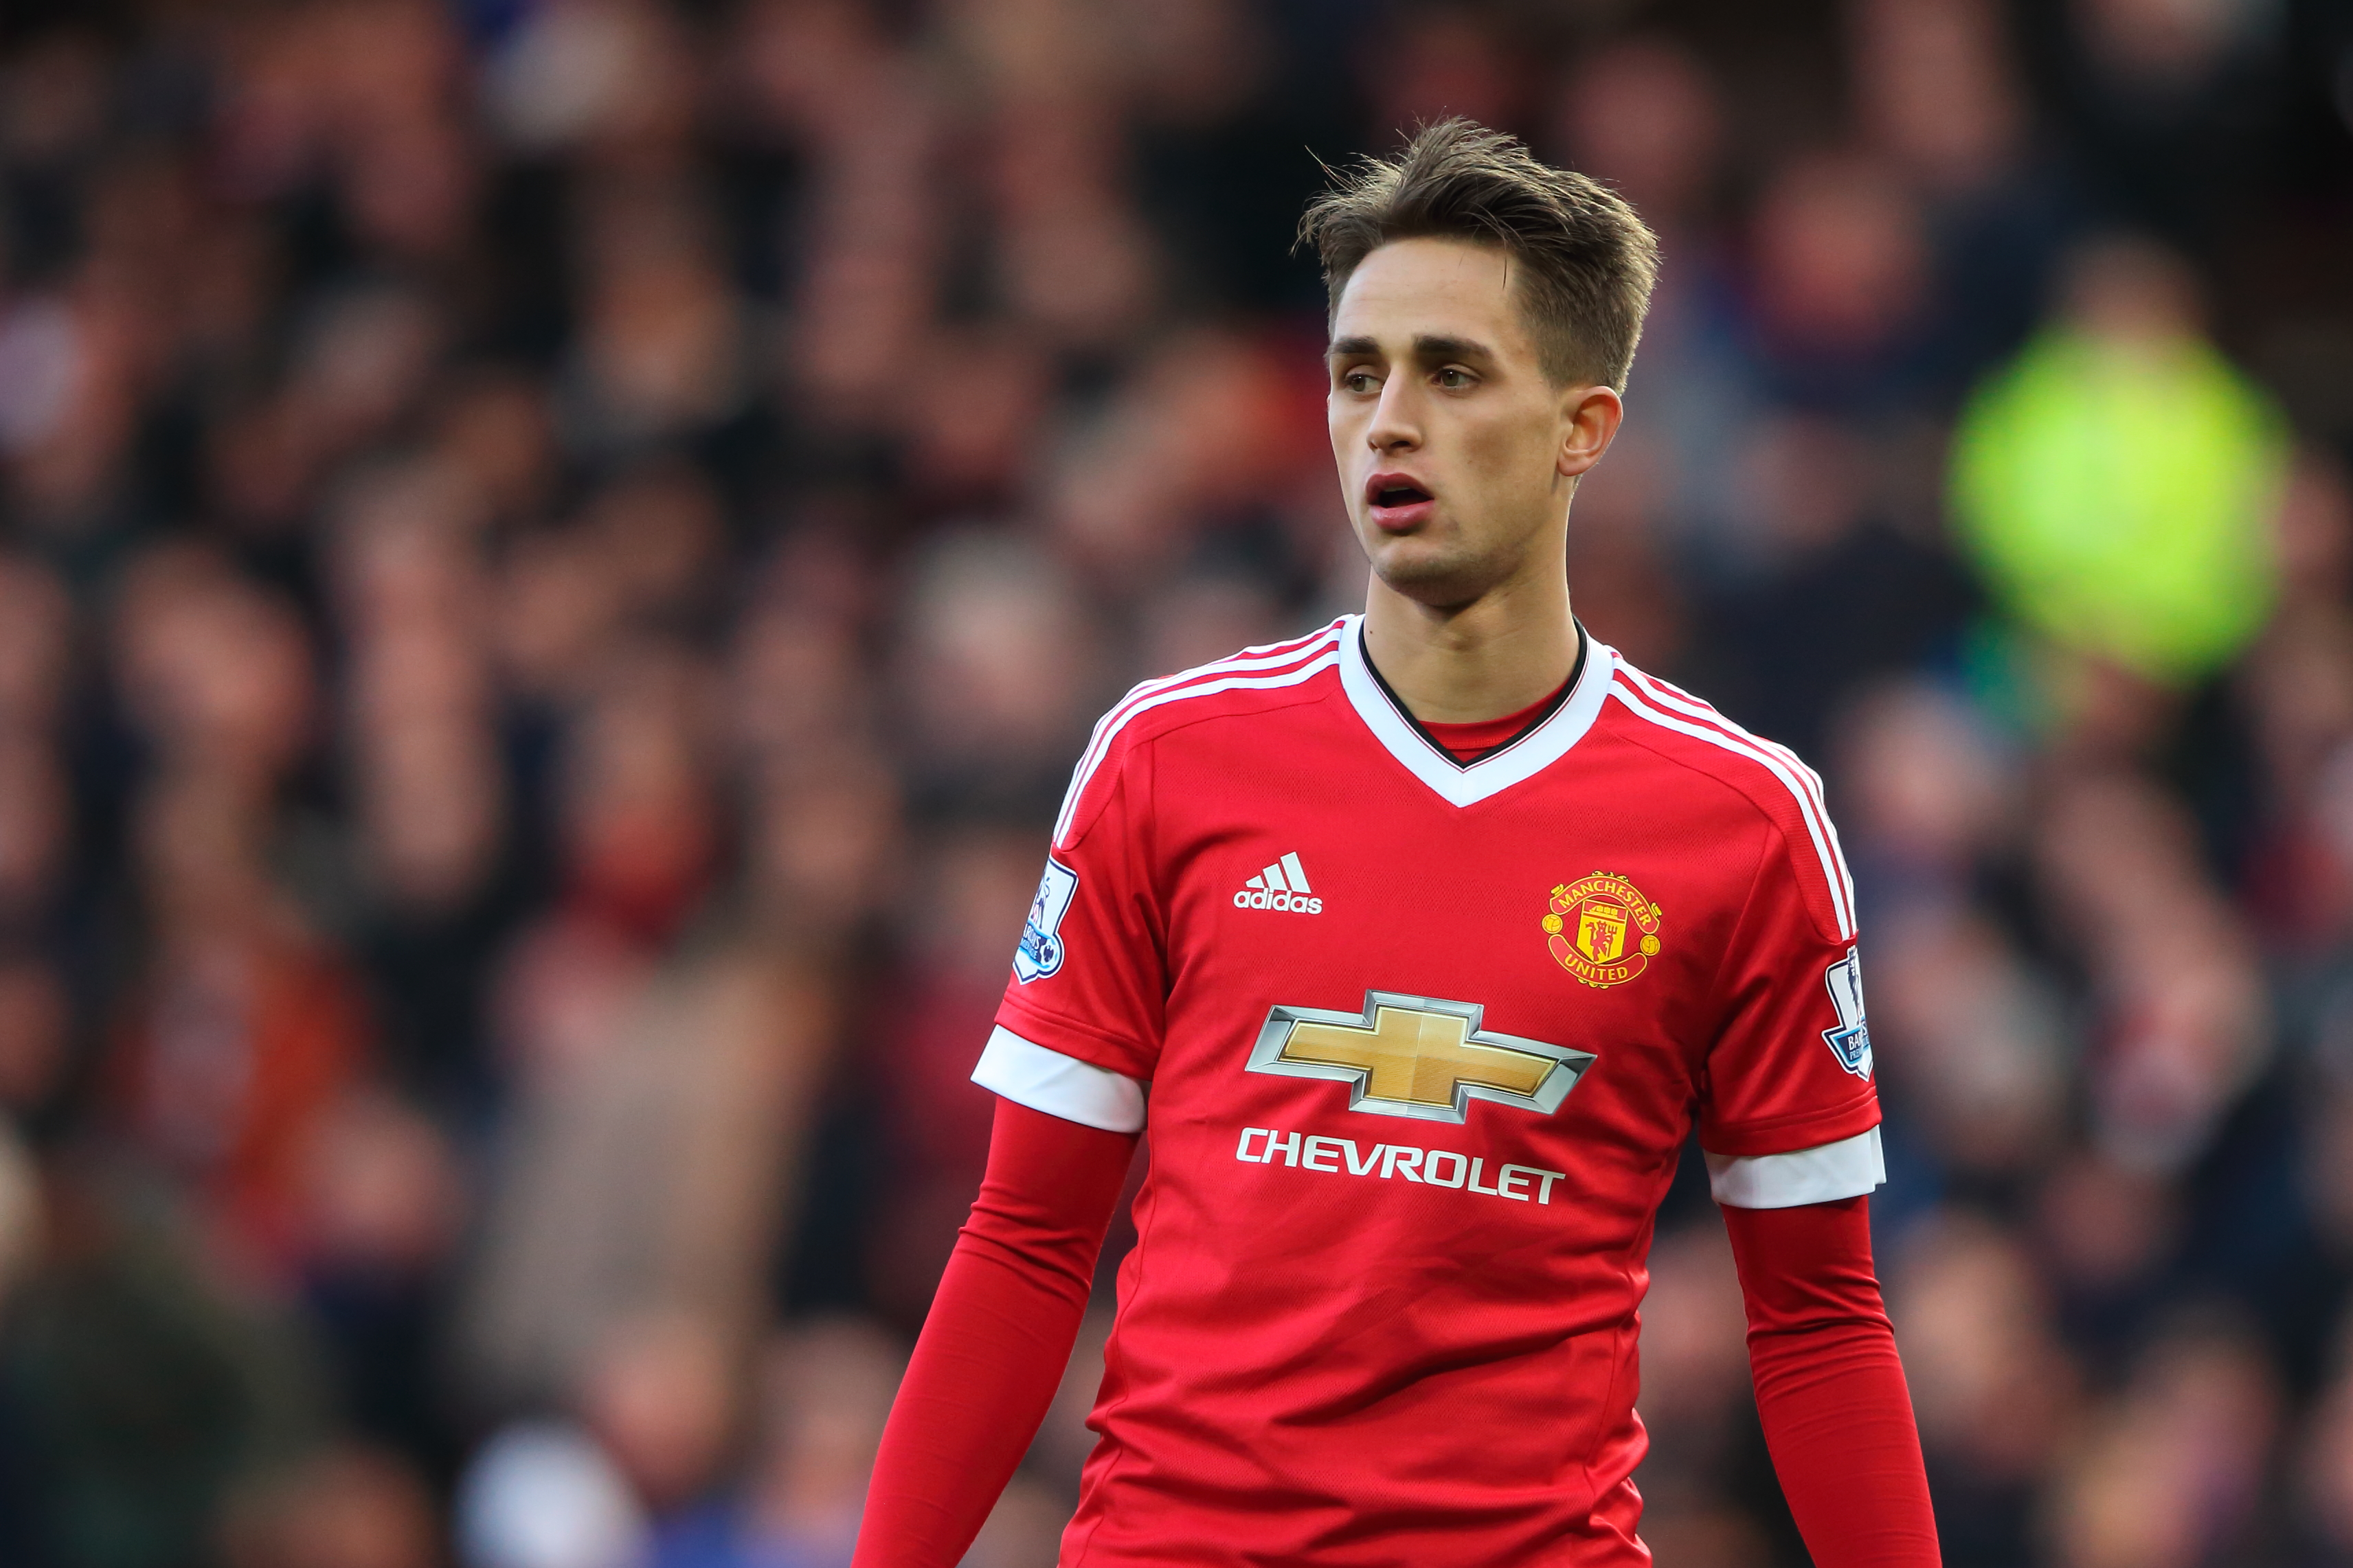 Why Barcelona should consider a transfer move for Manchester United's Adnan Januzaj